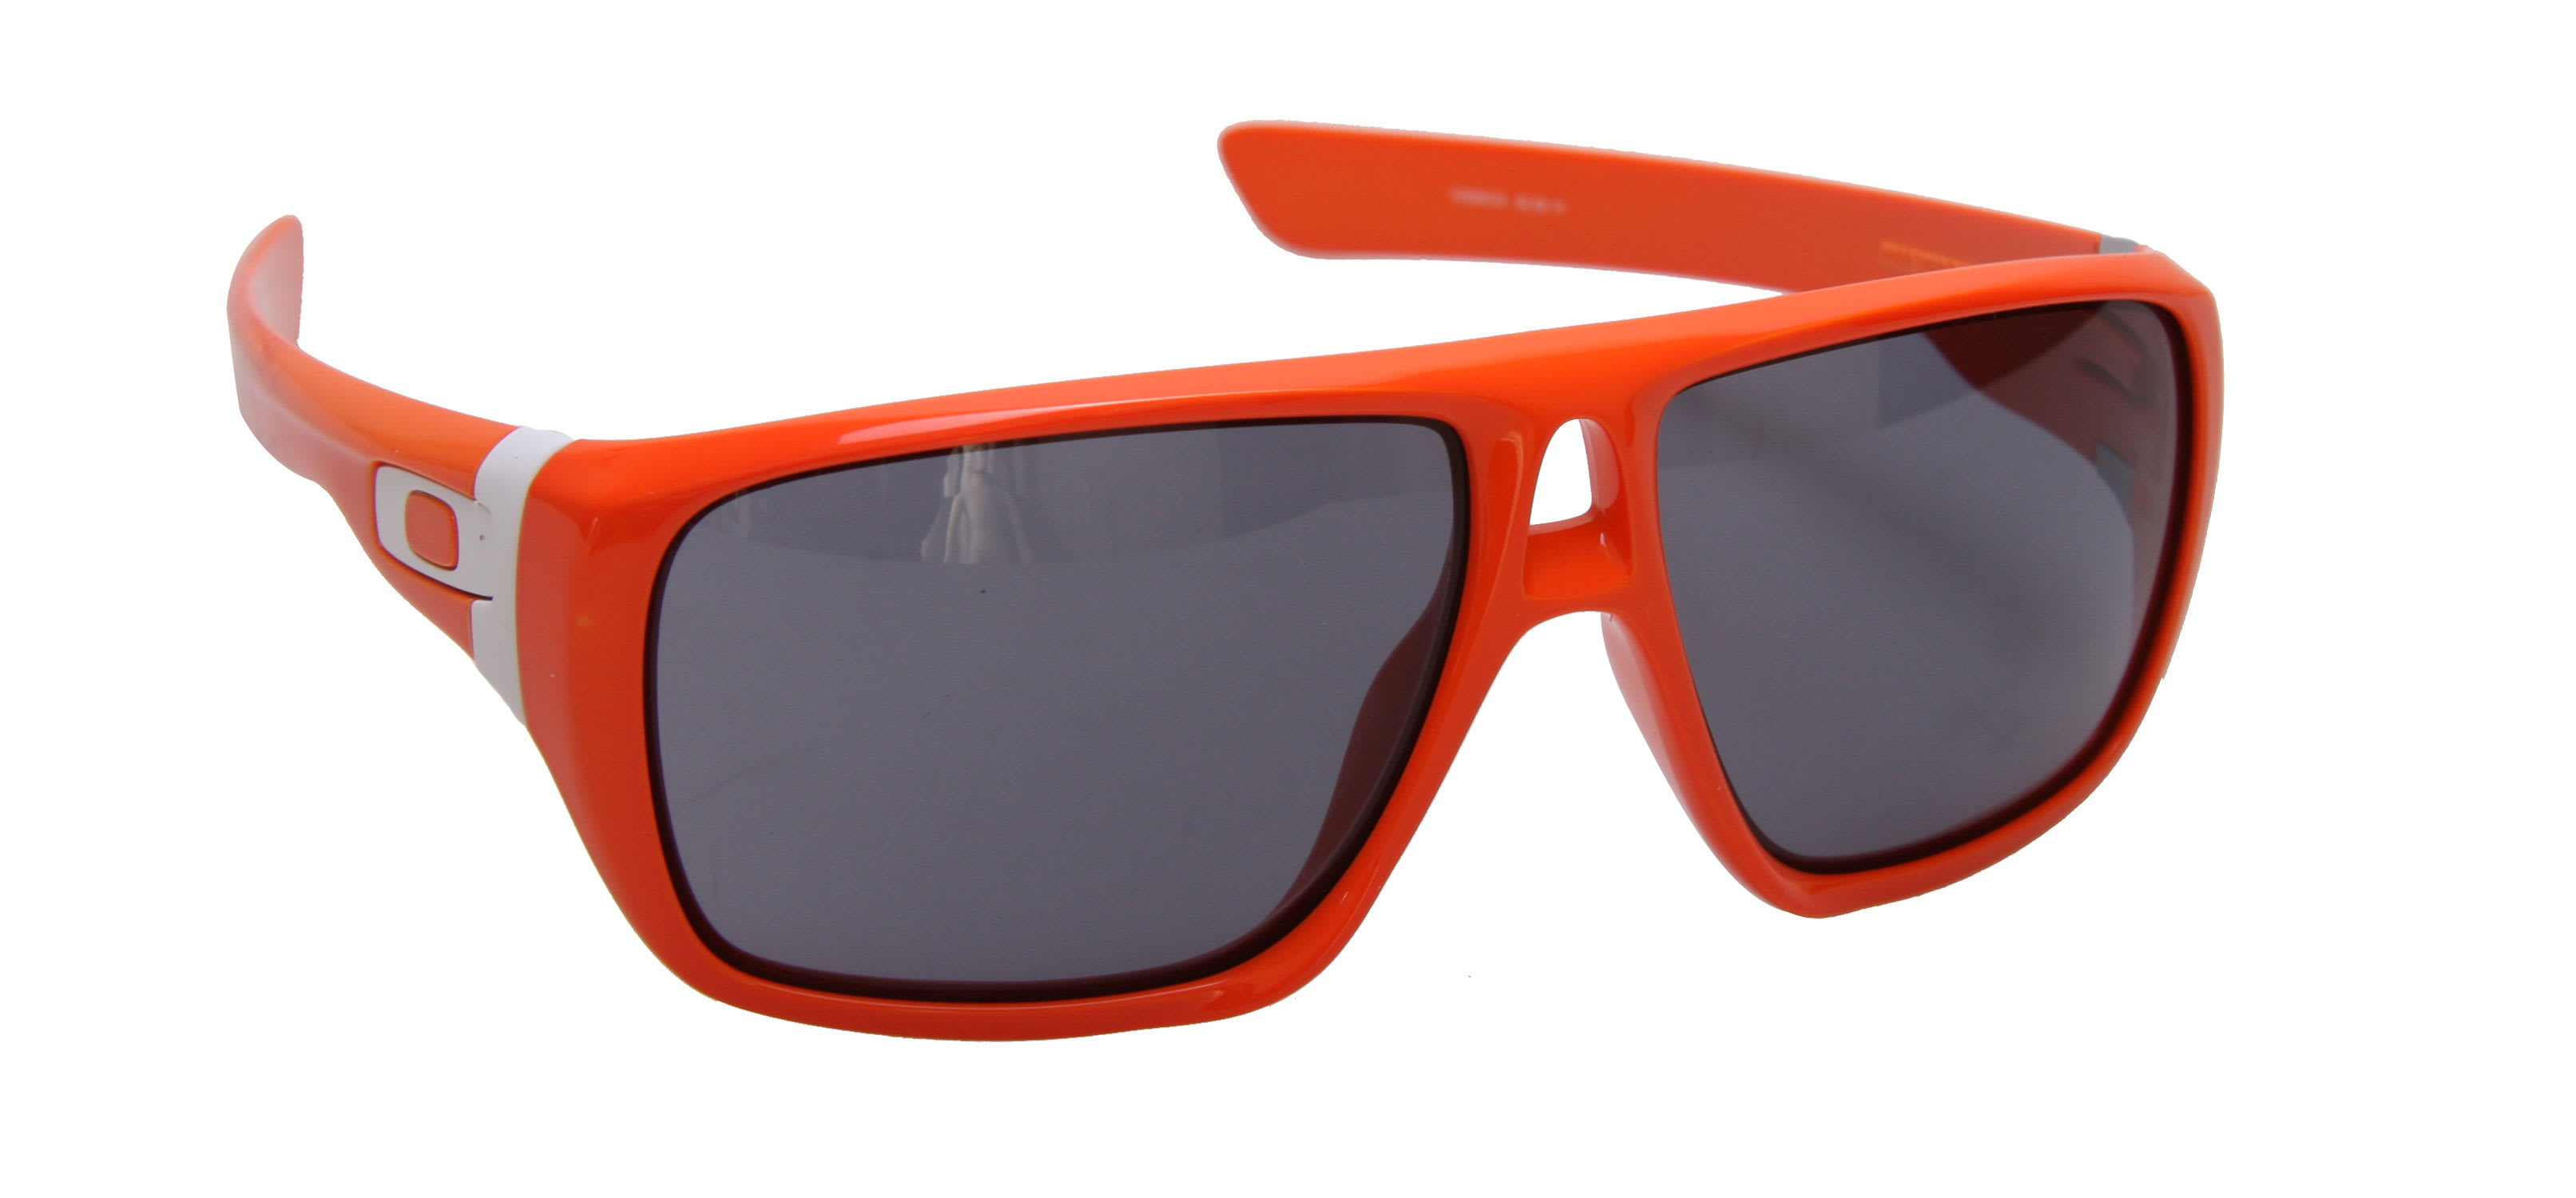 9855aaff9a3 Oakley Dispatch Sunglasses - thumbnail 1